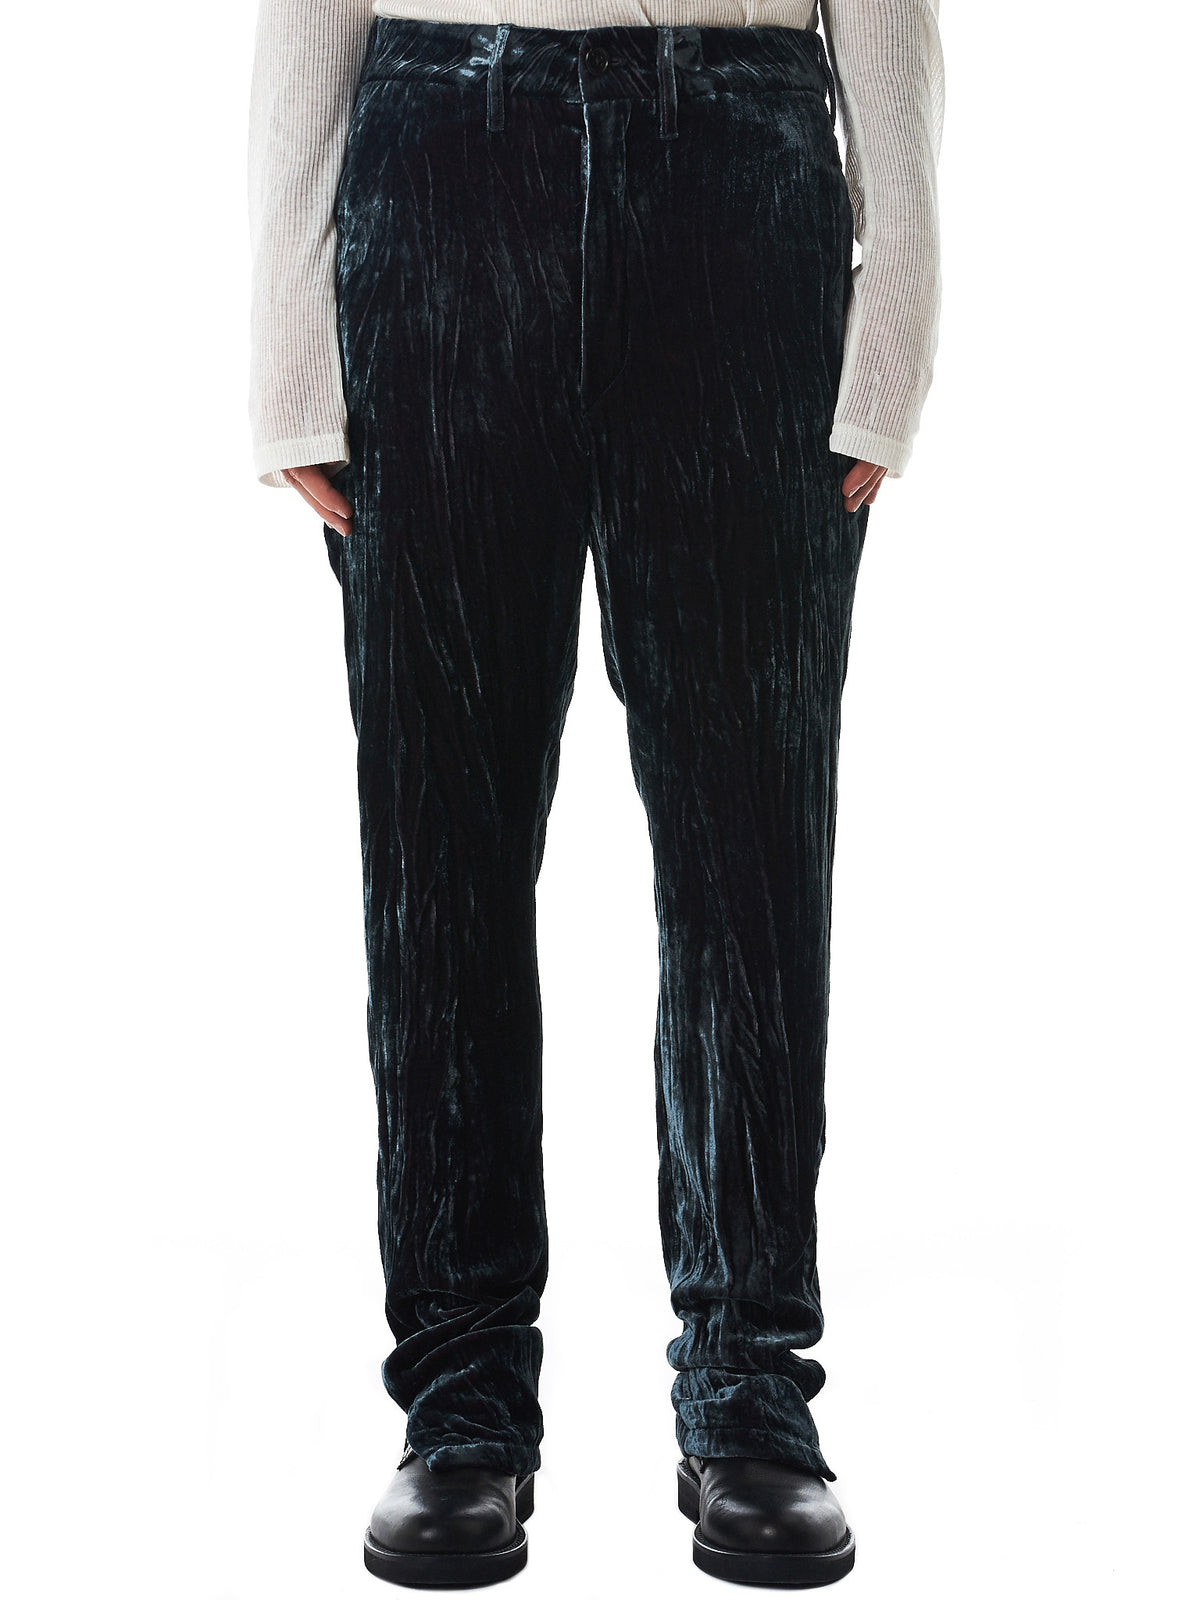 Chromatic Velvet Trousers (1702-3412-163-070)